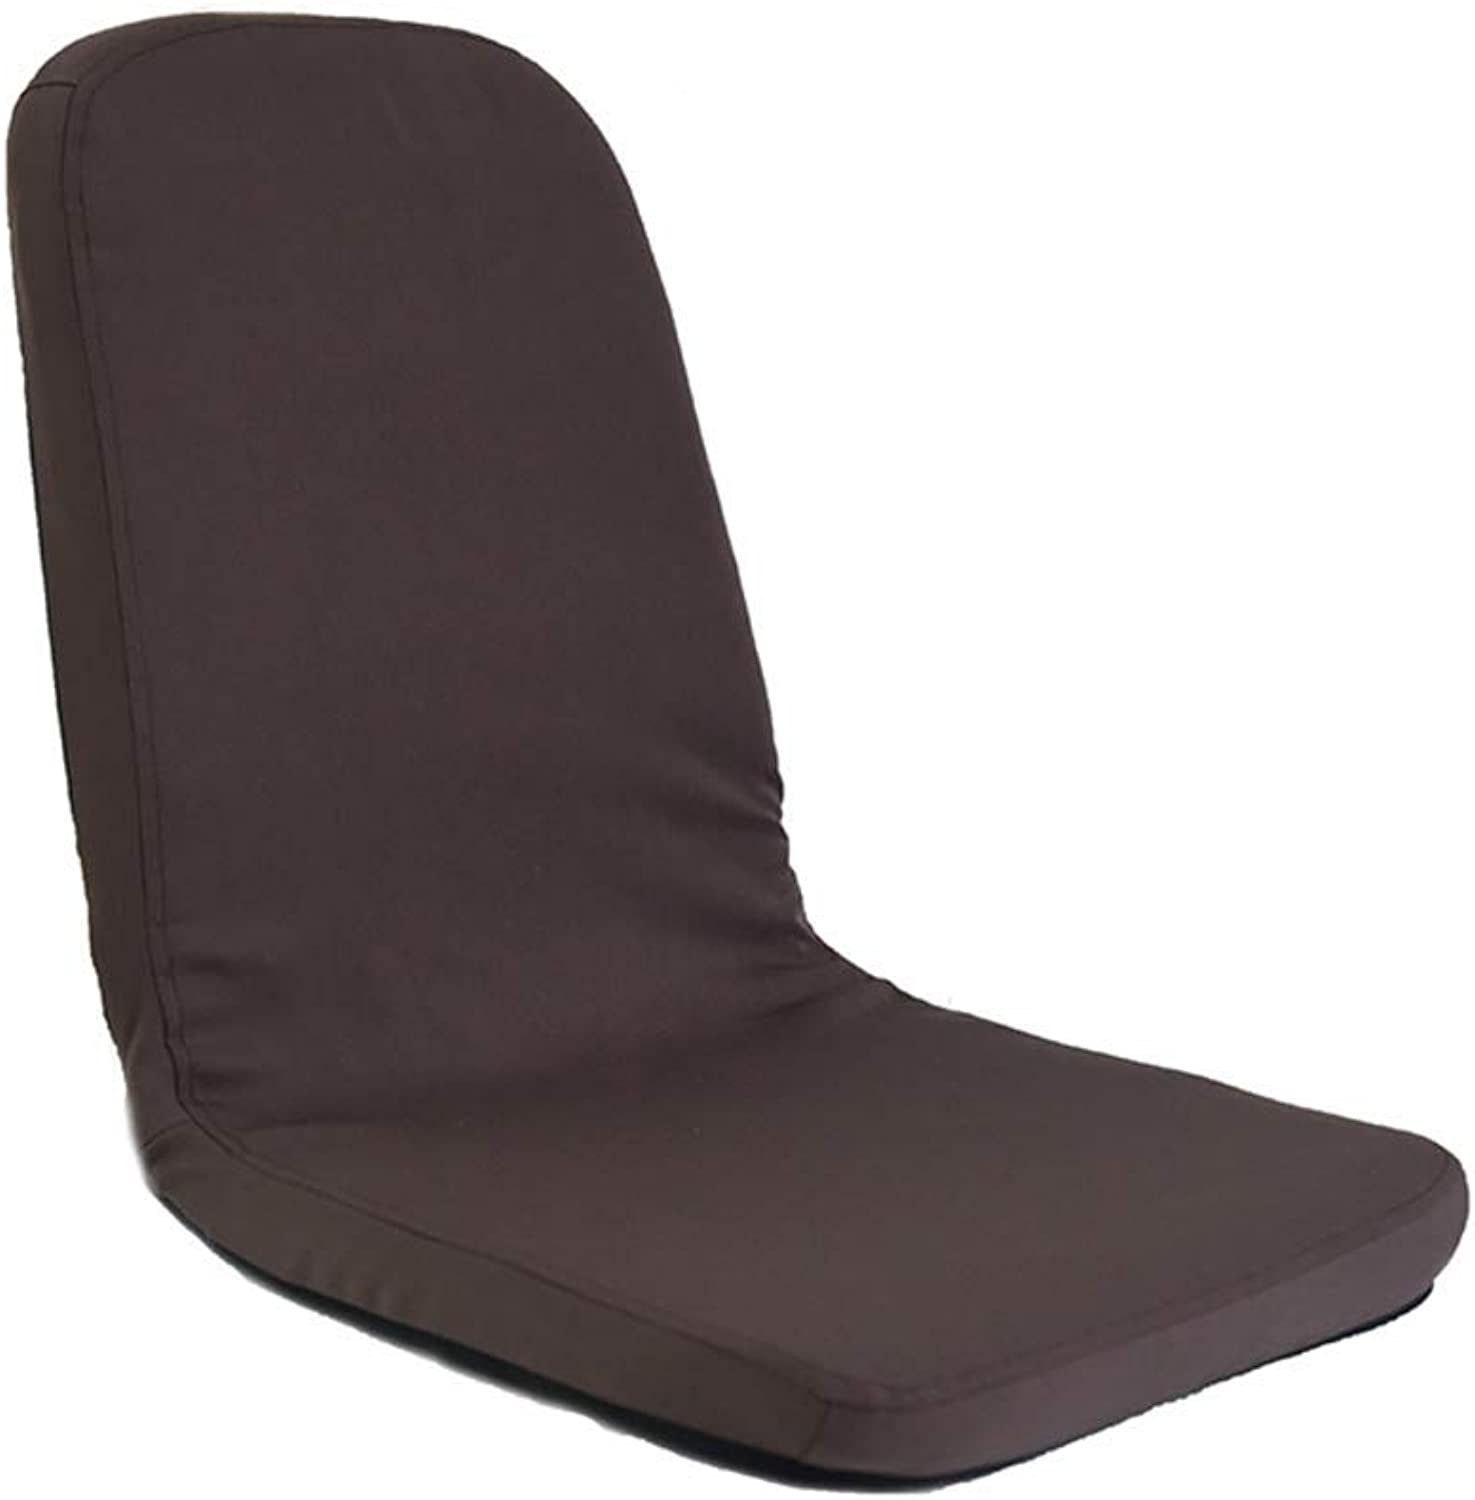 9ebd90ede38f ... Seat Cushion Japanese Tatami Floor Chair Seating,Folding Chairs Padded Floor  Chair-Black Chair